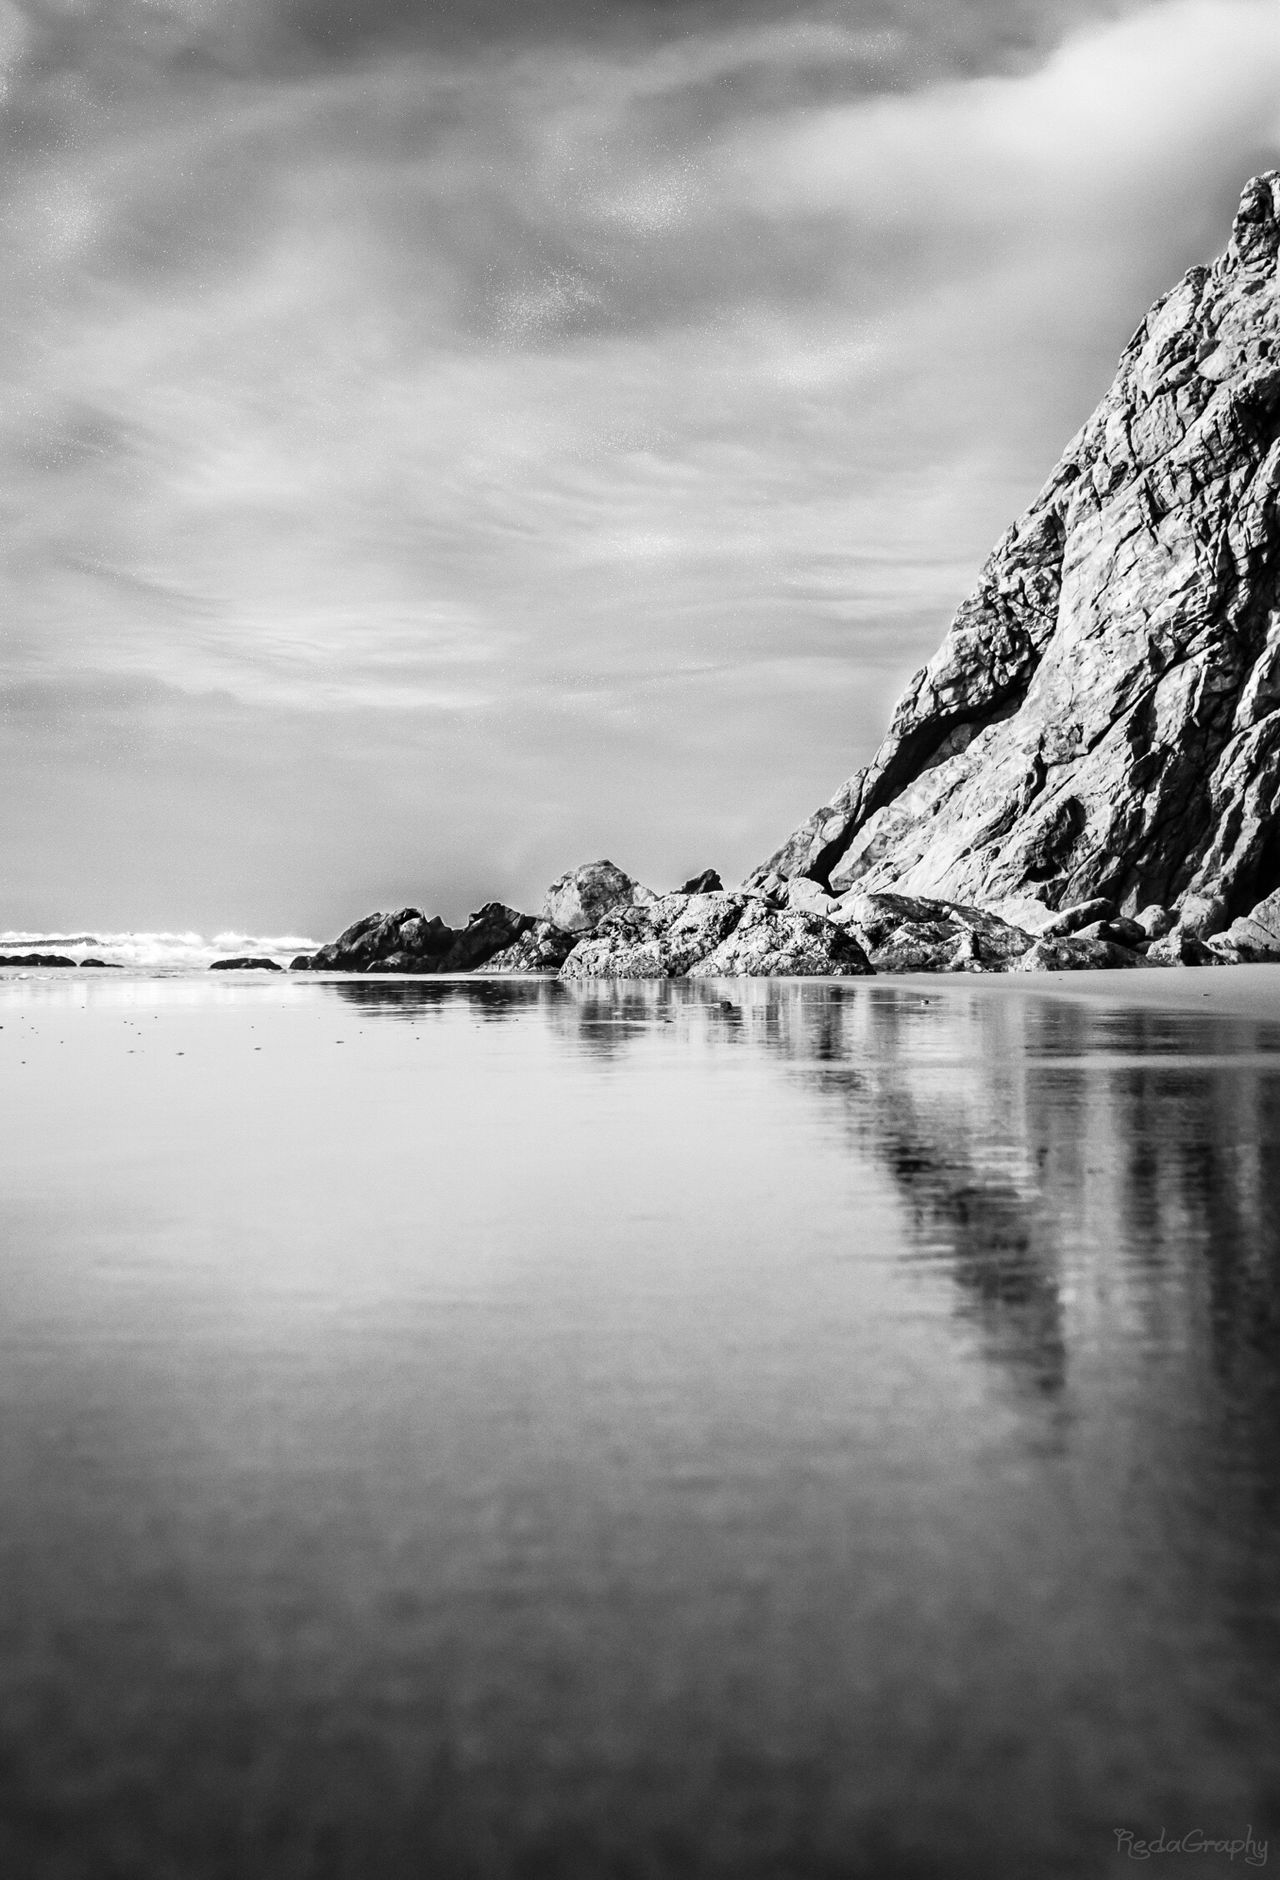 Water Sky Nature Outdoors Blackandwhite Morocco Landscape South Mirleft Agadir Symmetry